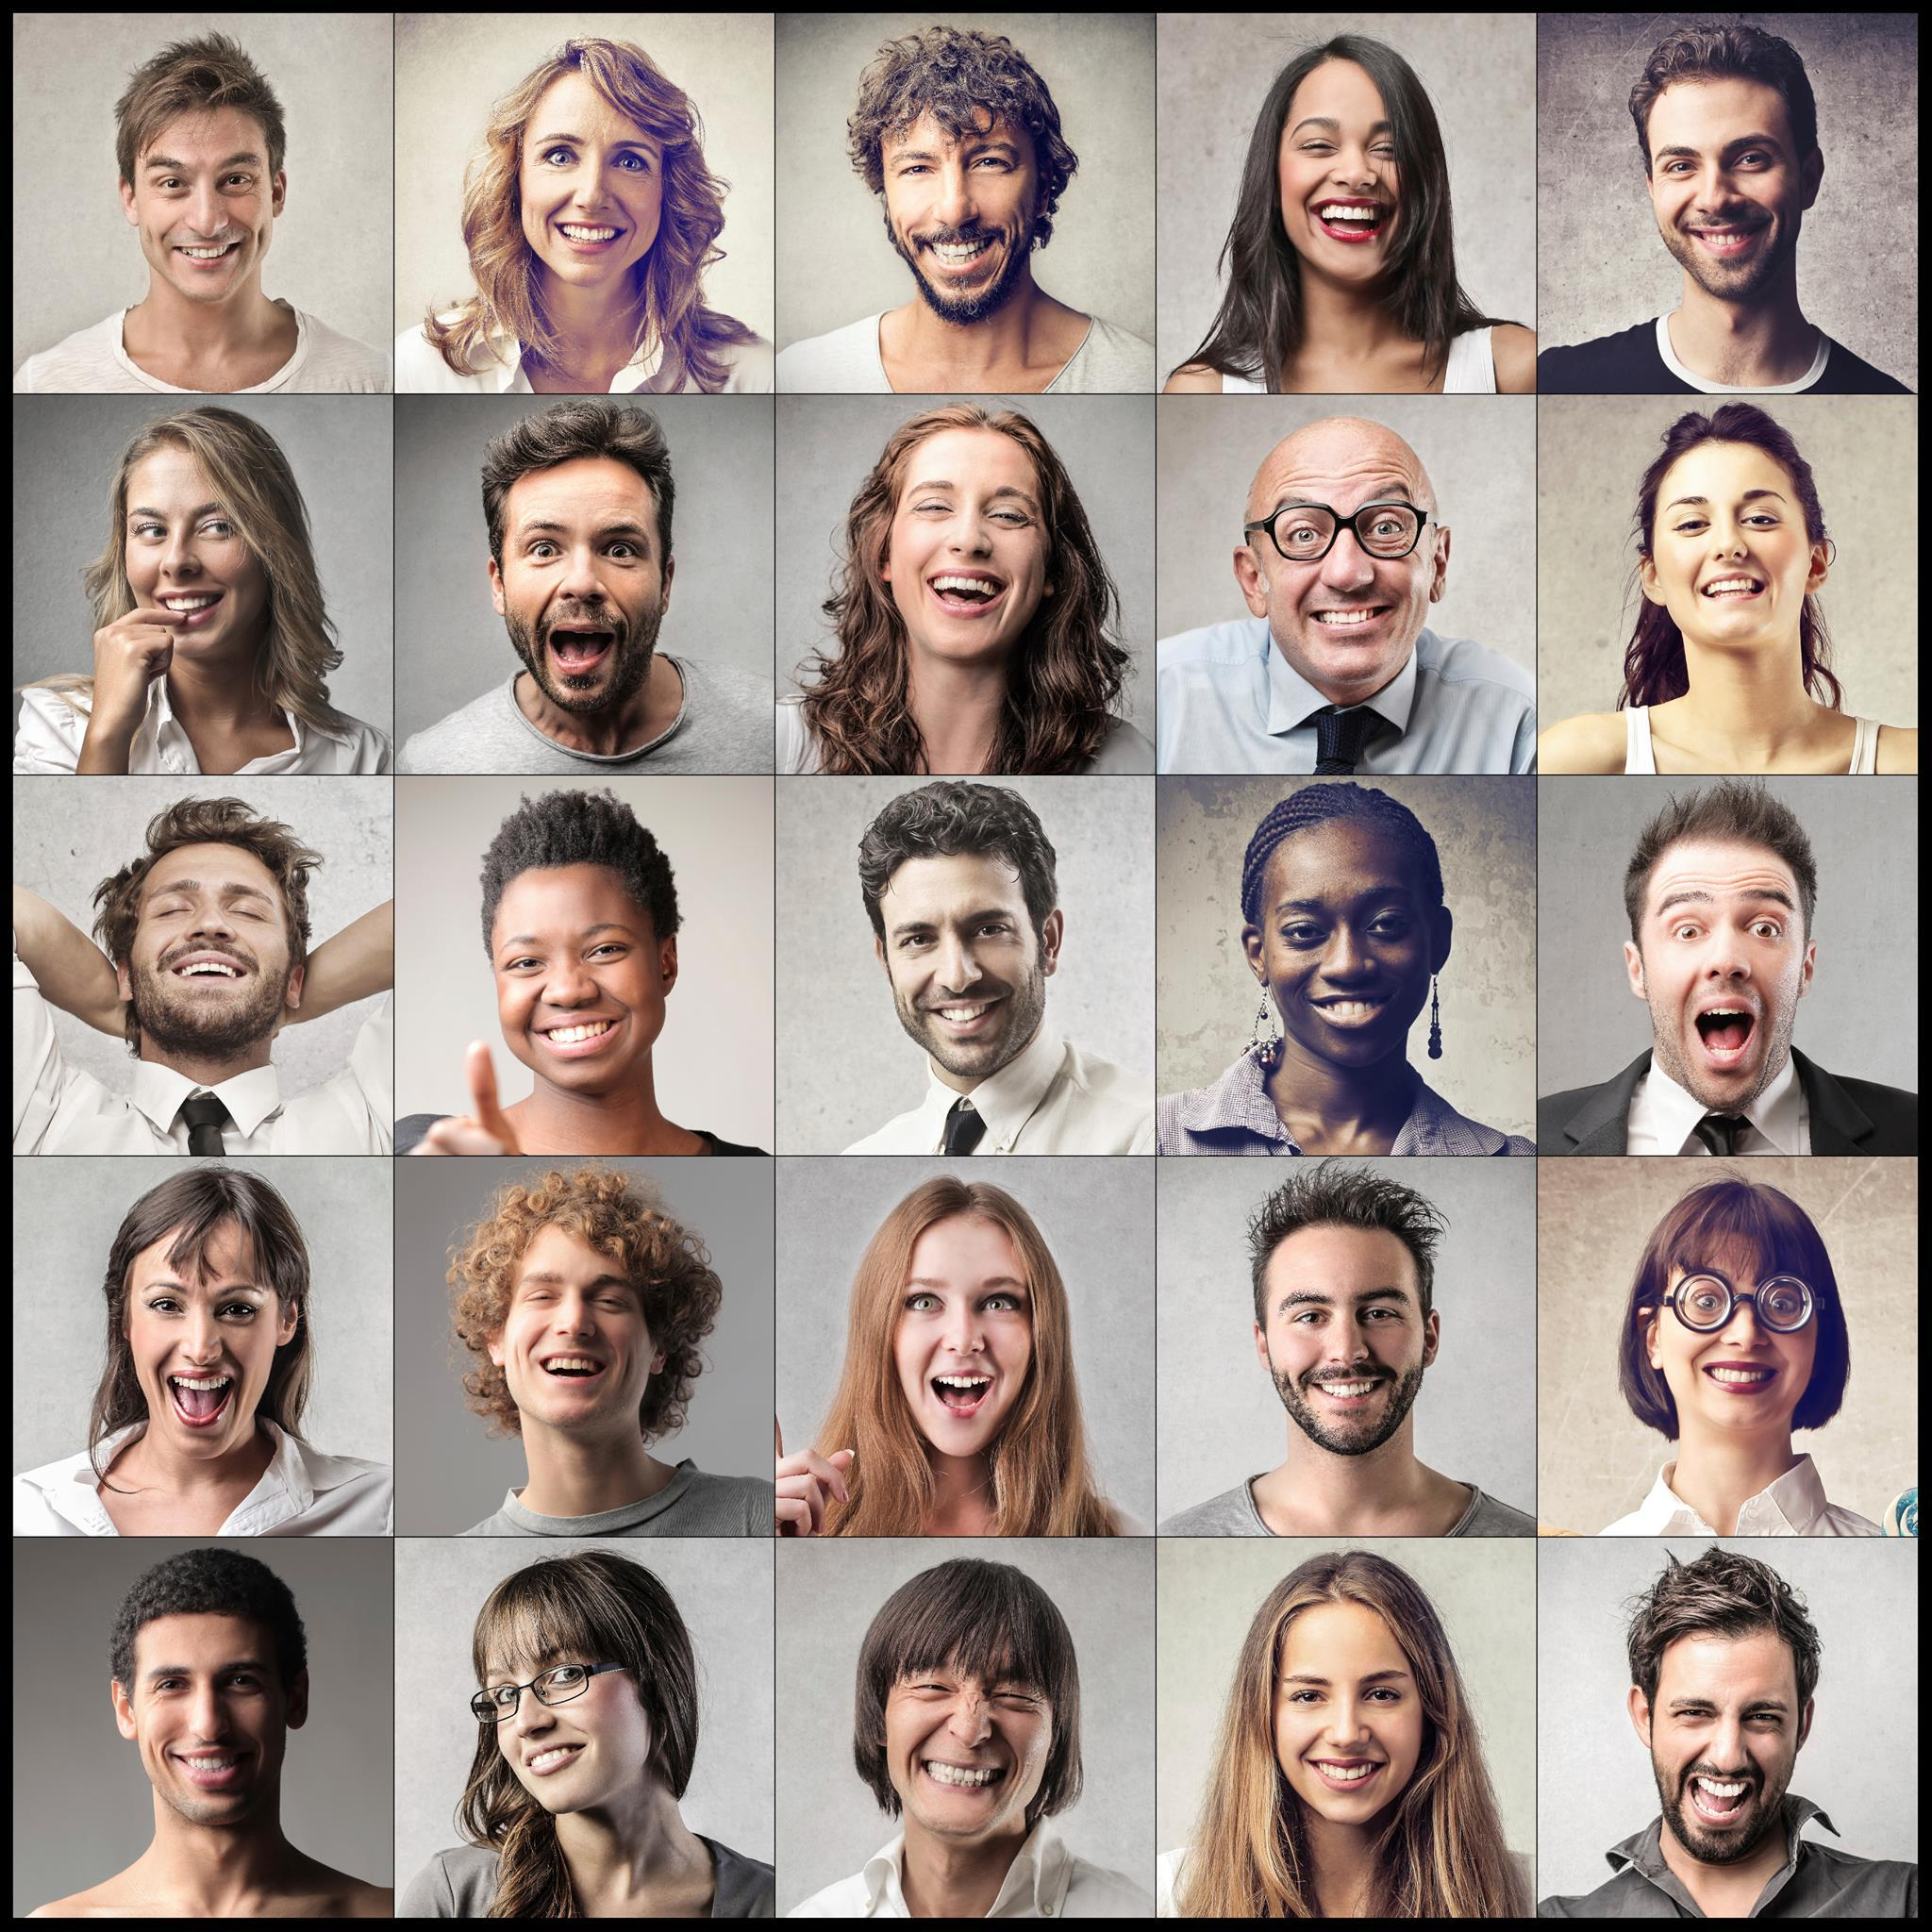 essay on cultural diversity in the classroom Read this essay on cultural diversity in the classroom come browse our large digital warehouse of free sample essays get the knowledge you need in order to pass your classes and more.